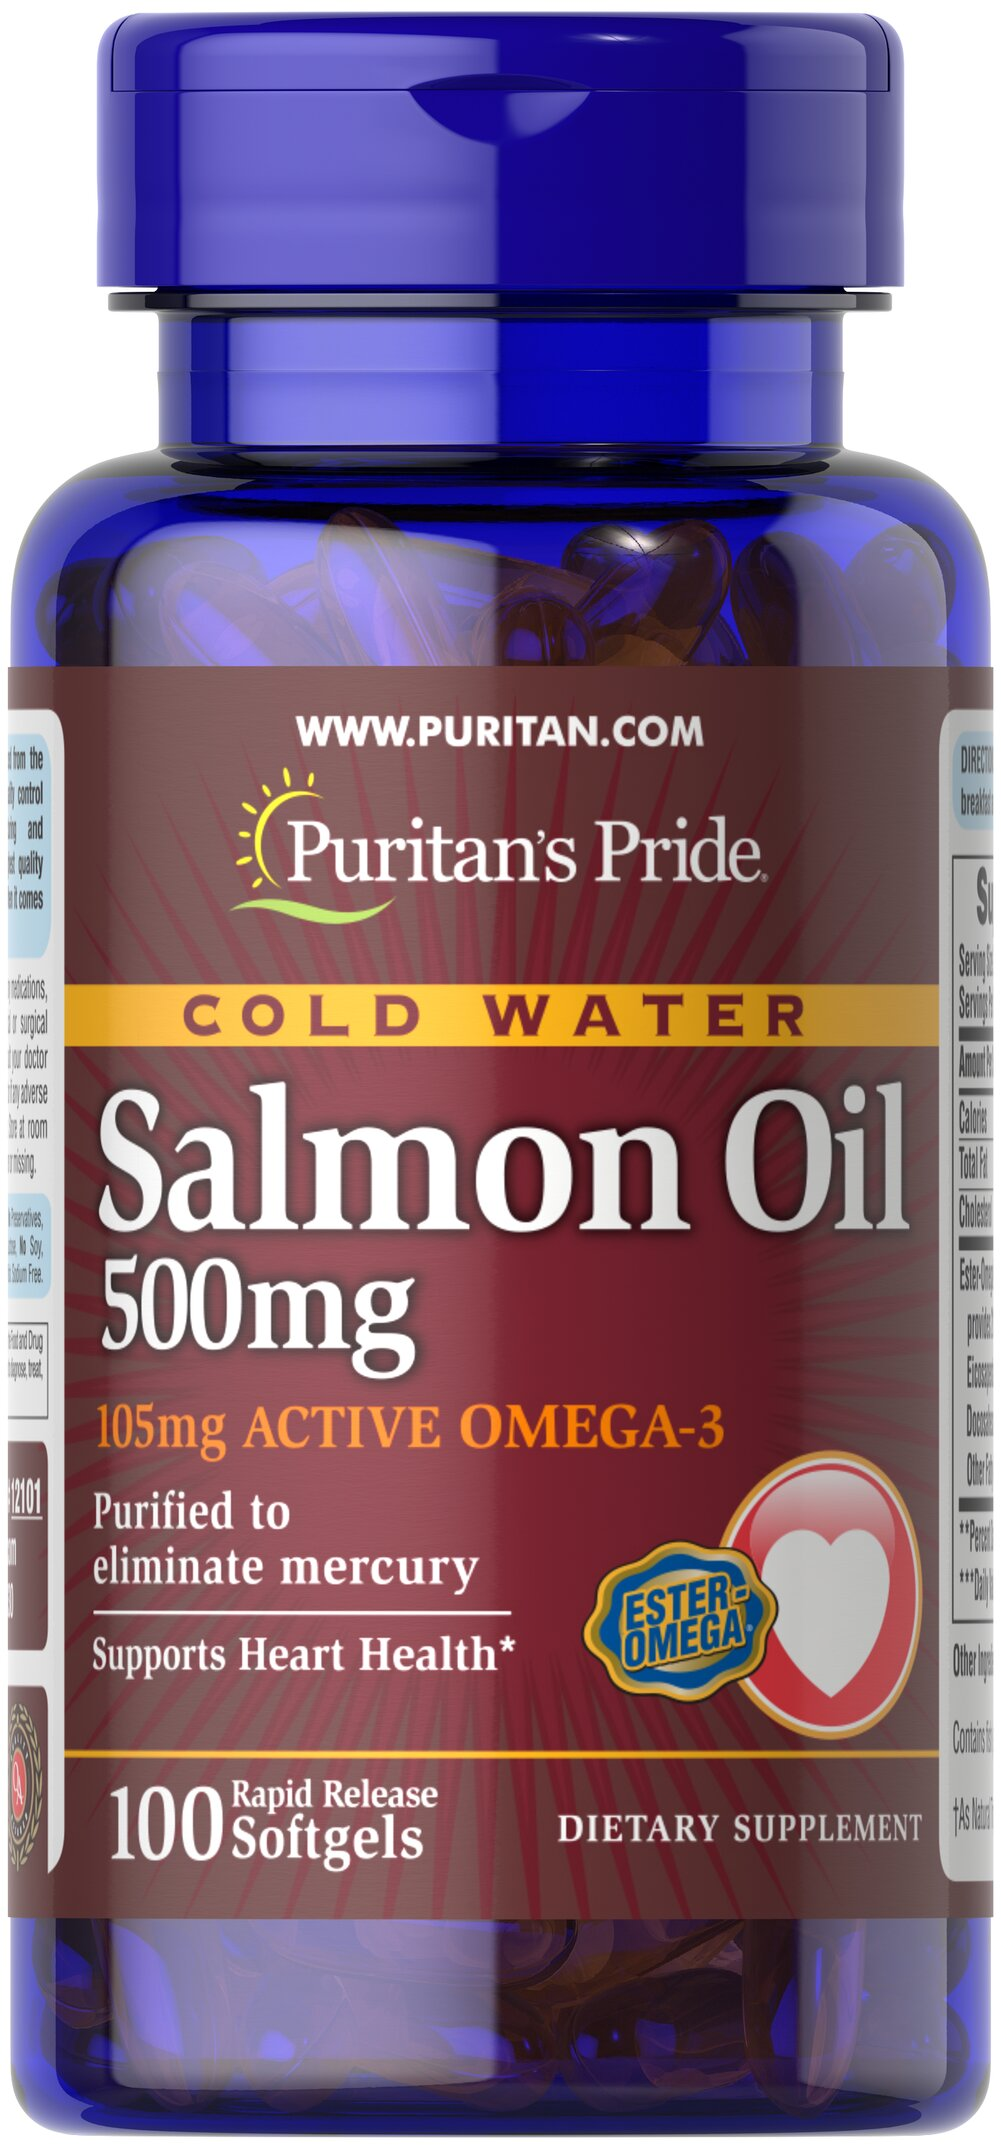 Omega-3 Salmon Oil 500 mg (105 mg Active Omega-3) <p><strong>Purified to Eliminate Mercury</strong></p><p>Puritan's Pride Salmon Oil contains the finest Salmon Oil available. Take two softgels two times a day to gain the essential fatty acids your body needs for good health.** Salmon contains a high concentration of Omega-3 fatty acids that have been shown to help promote metabolic, circulatory and heart health.**</p> 100 Softgels 500 mg $10.29